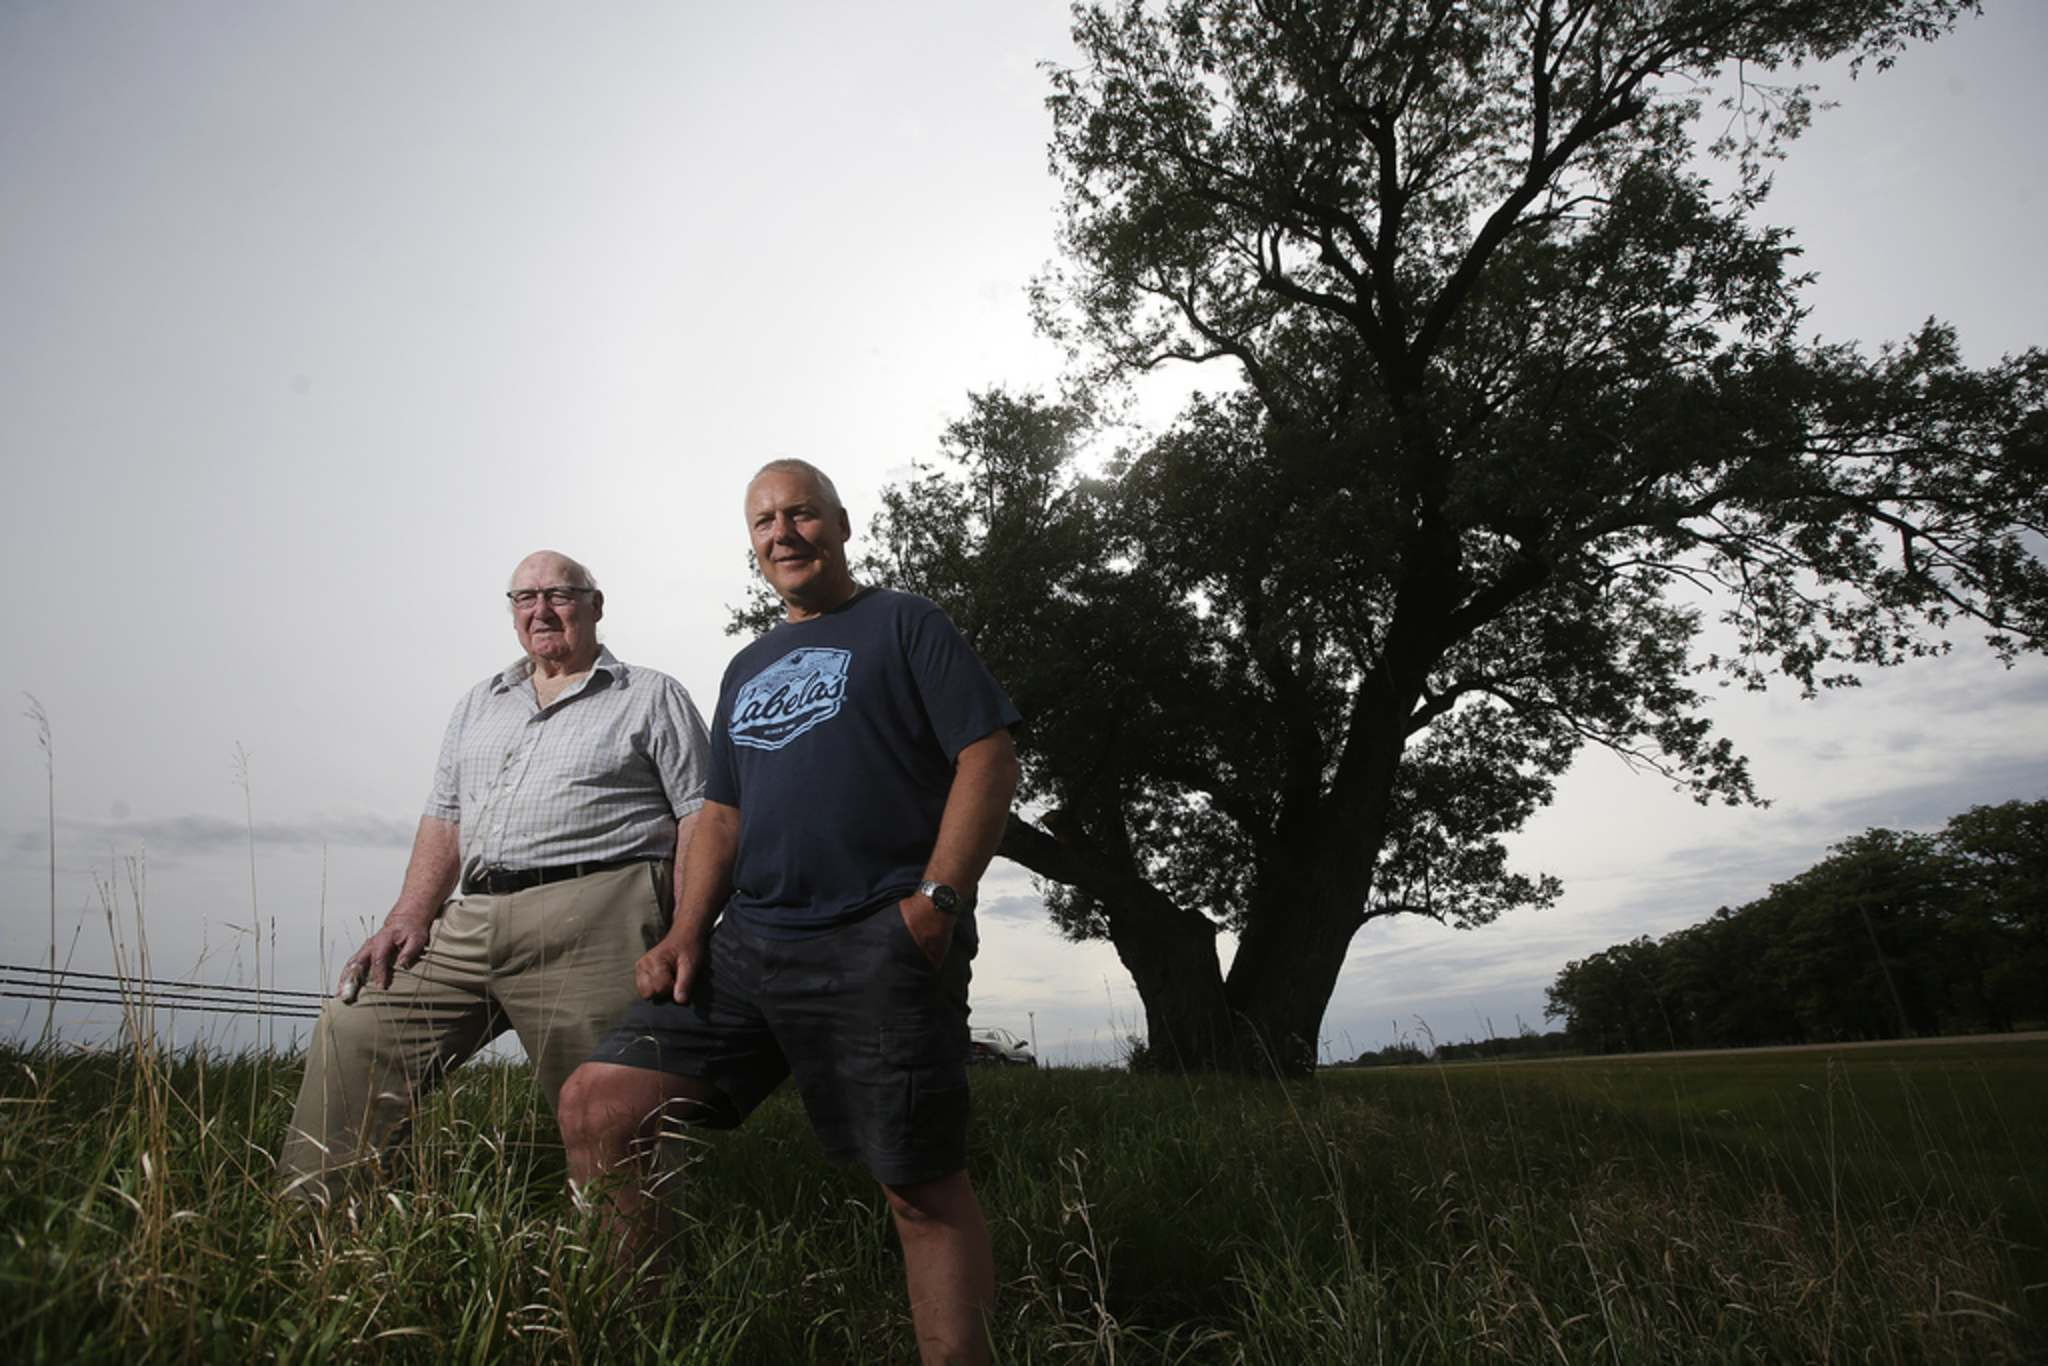 JOHN WOODS / WINNIPEG FREE PRESS</p><p>Donald Coubrough's grandfather, Walter Smith, planted two willows on their property circa 1872. He and his son Kevin recently visited the surviving North Tree, which is a Manitoba heritage tree.</p>